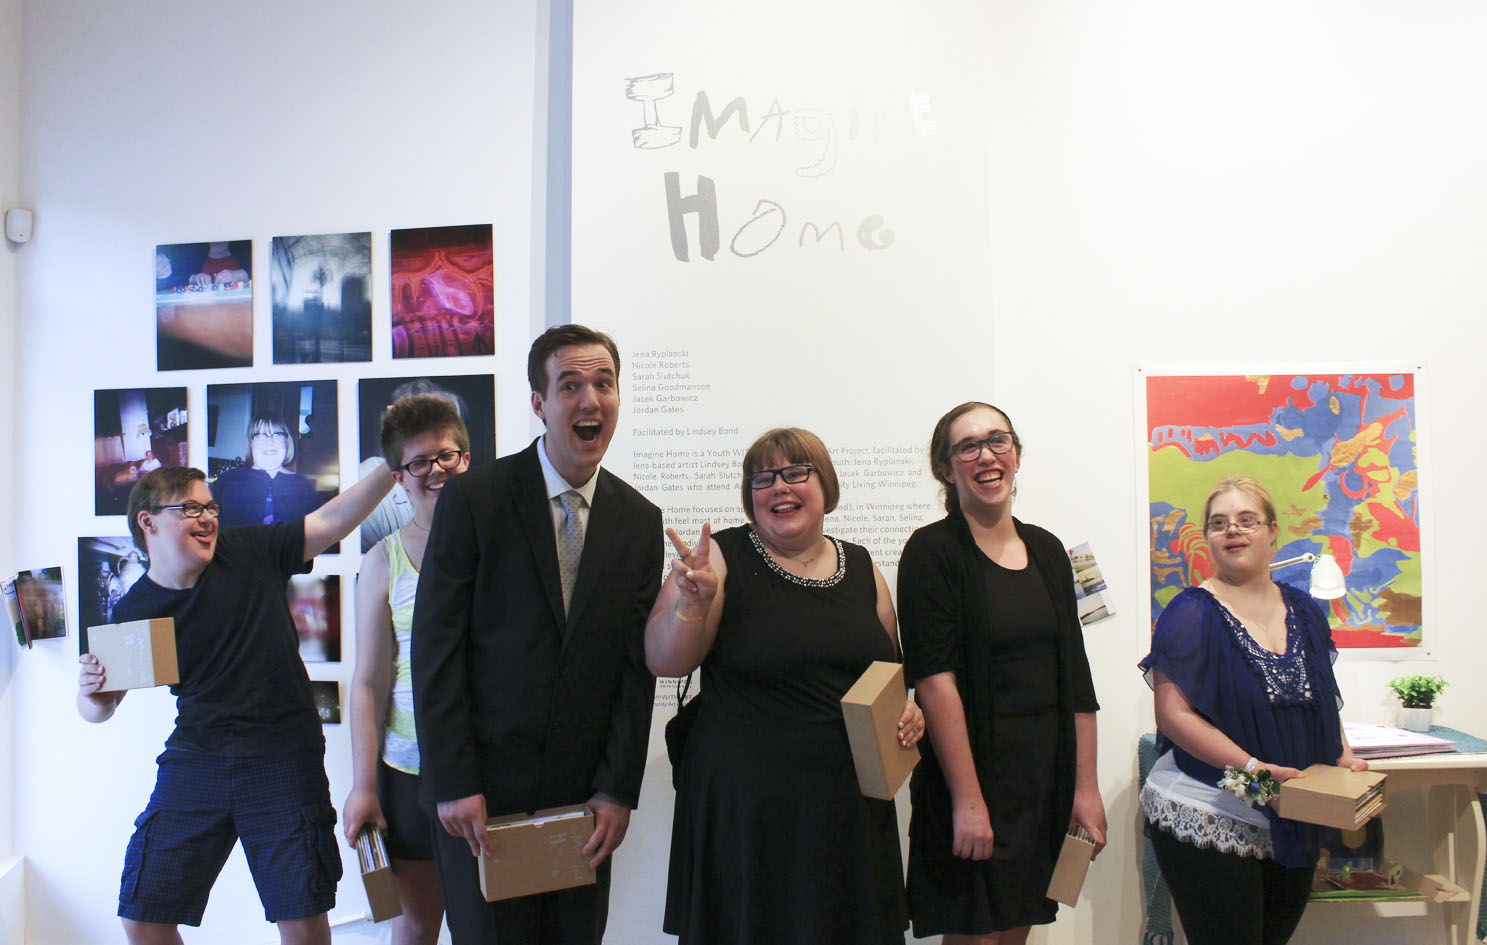 Imagine Home  Opening Reception Mentoring Artists for Women's Art